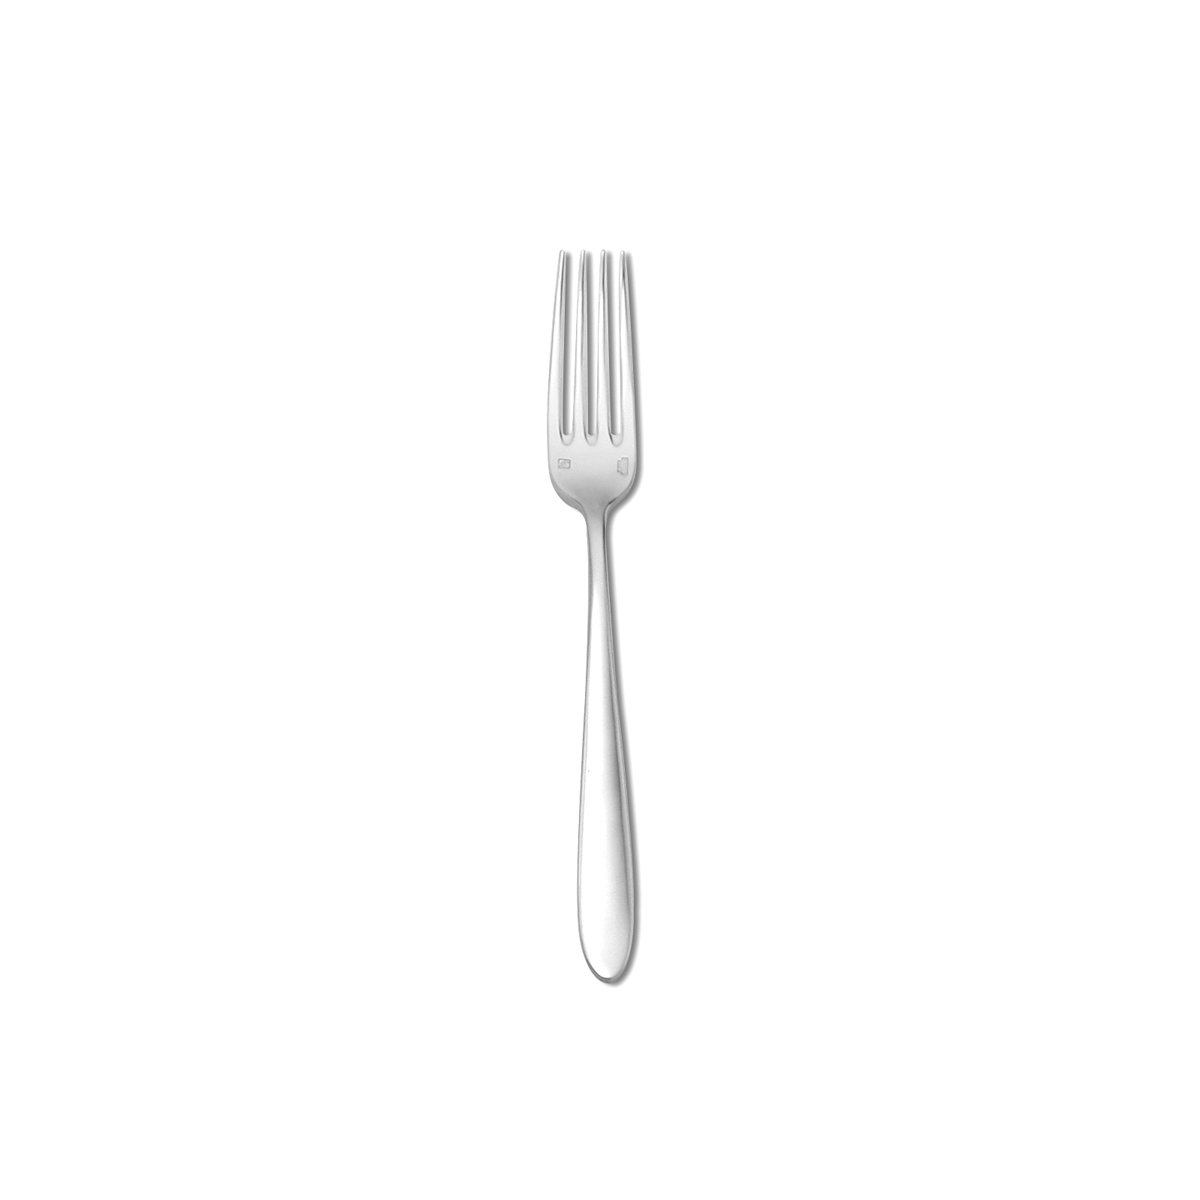 Oneida Foodservice T023FDEF Mascagni Salad Forks 7.8 x 2.8 x 1.3 inches Stainless Steel